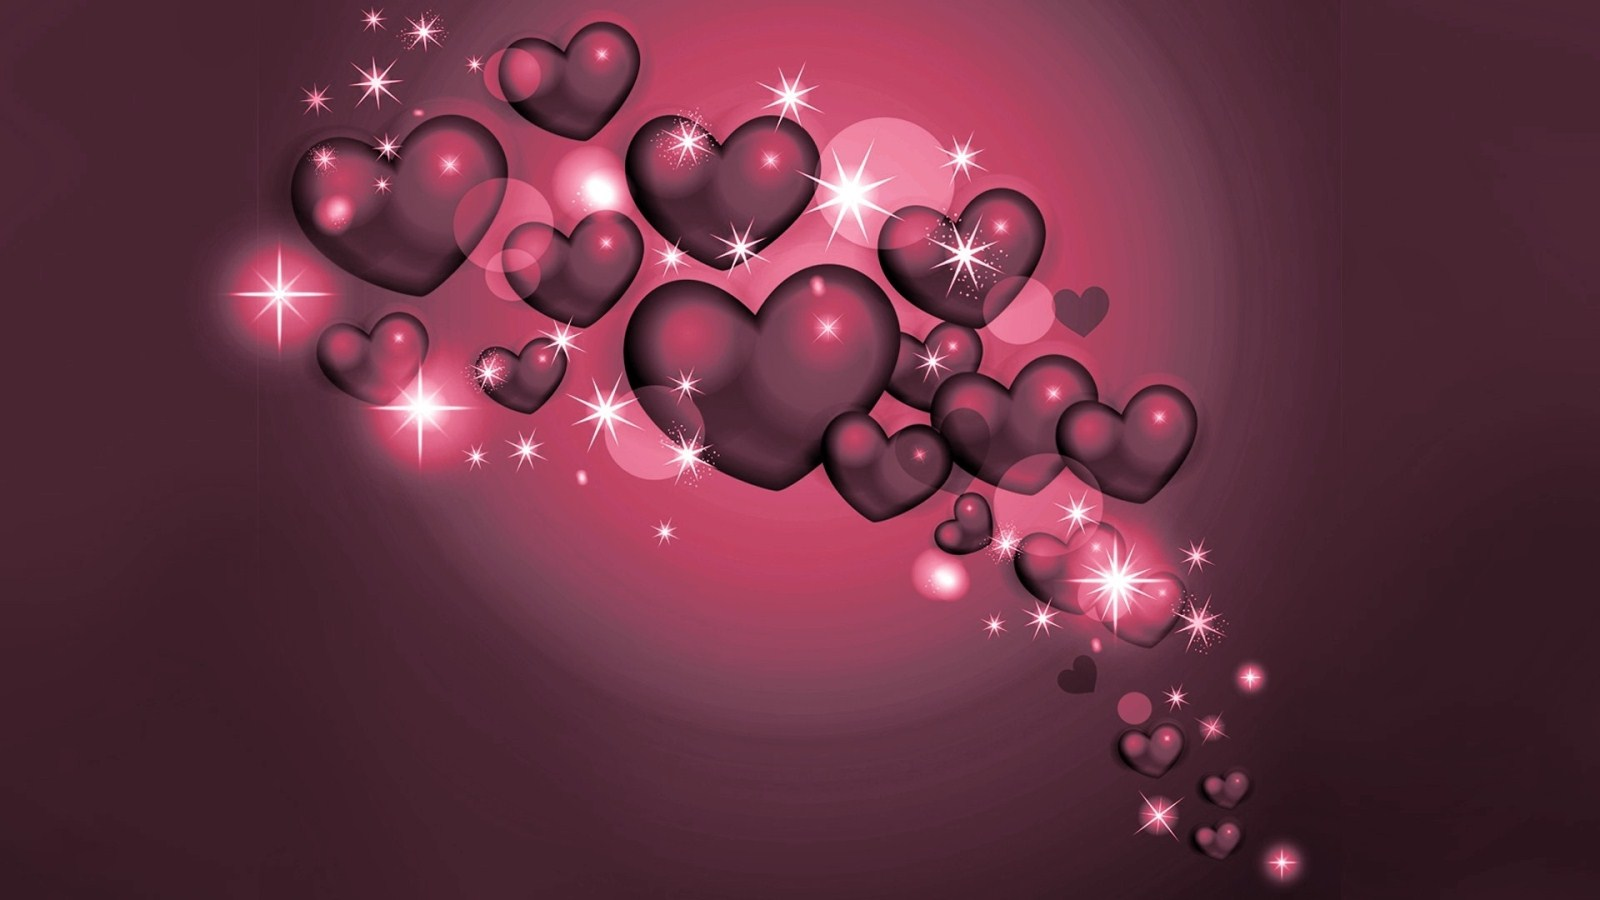 Love Heart Wallpaper Background 3d : 3D Love Wallpaper - WallpaperSafari